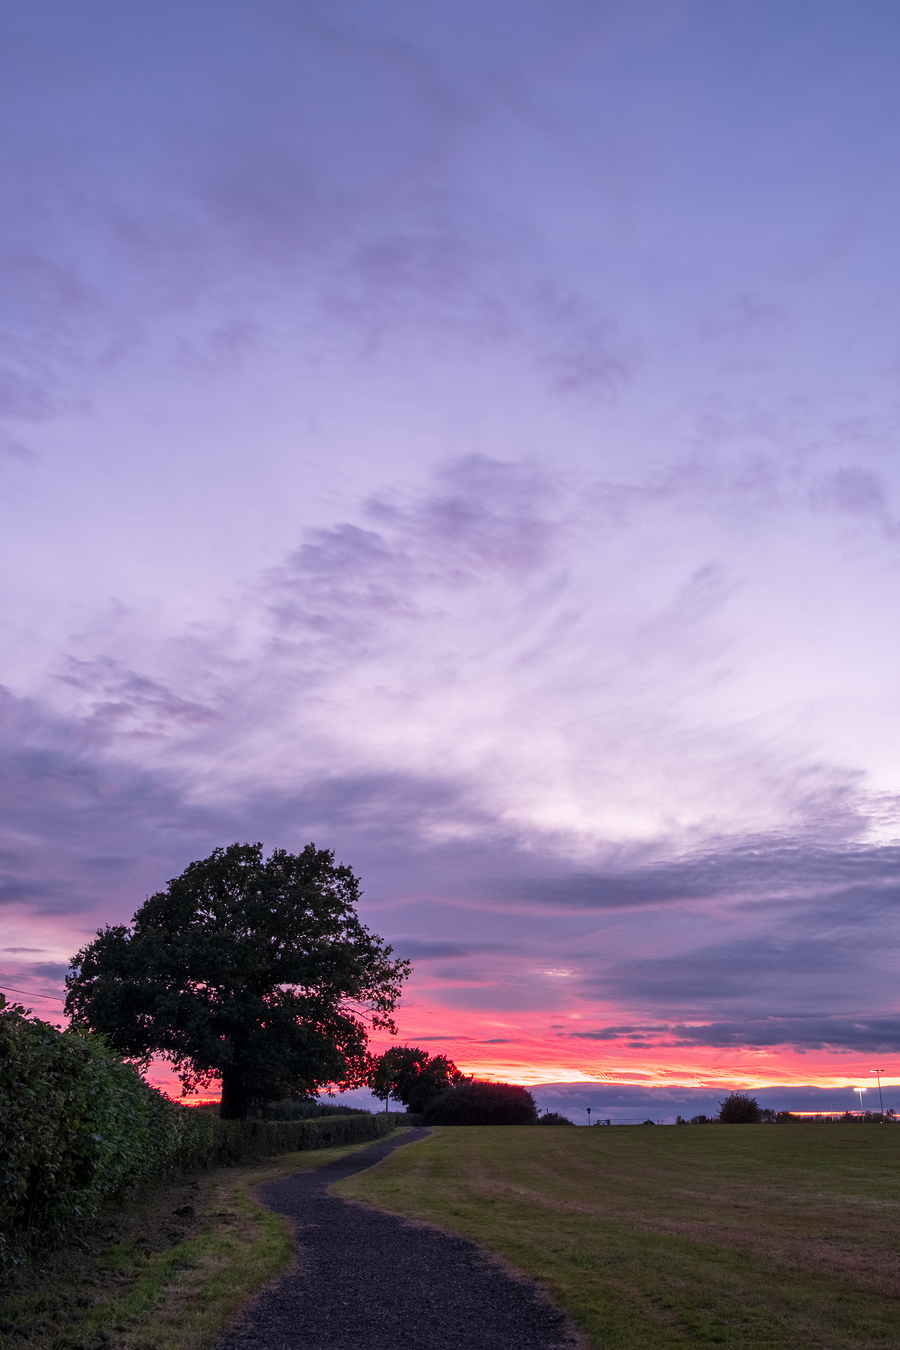 Sunset / Photography by gregg shoots / Uploaded 17th December 2018 @ 07:18 PM